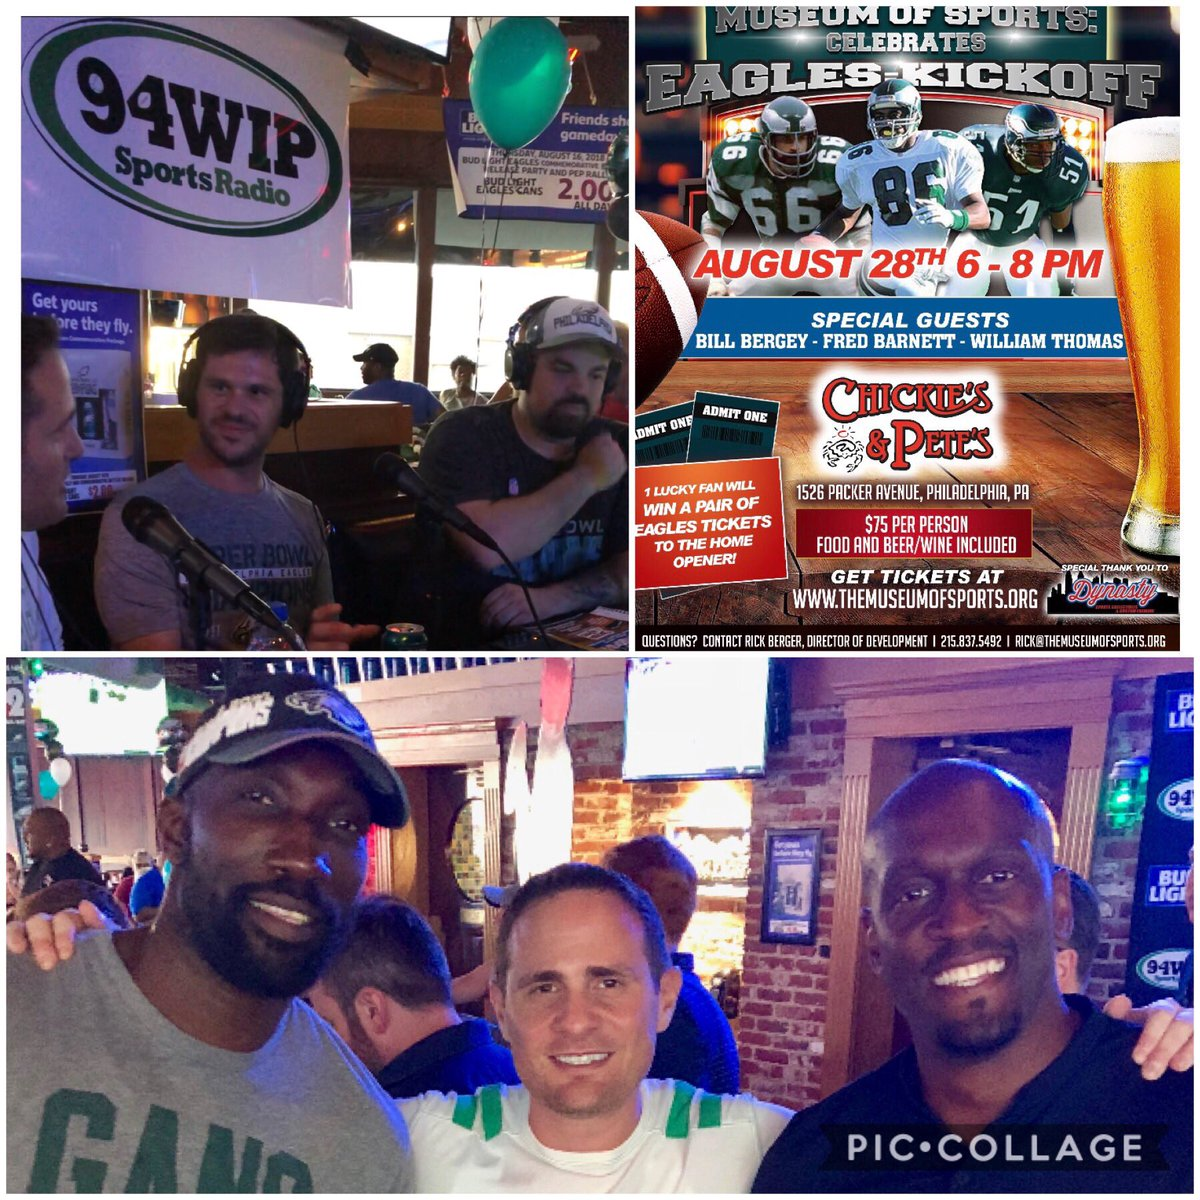 Great time promoting our upcoming event with @Ike58Reese, @SayGerv, @JohnBarchard,and @JamesSeltzer!  Special thanks to @ChickiesnPetes and @SportsRadioWIP!  Tix still available at https://the-museum-of-sports.ticketleap.com/eagles-kickoff/  #FlyEaglesFly